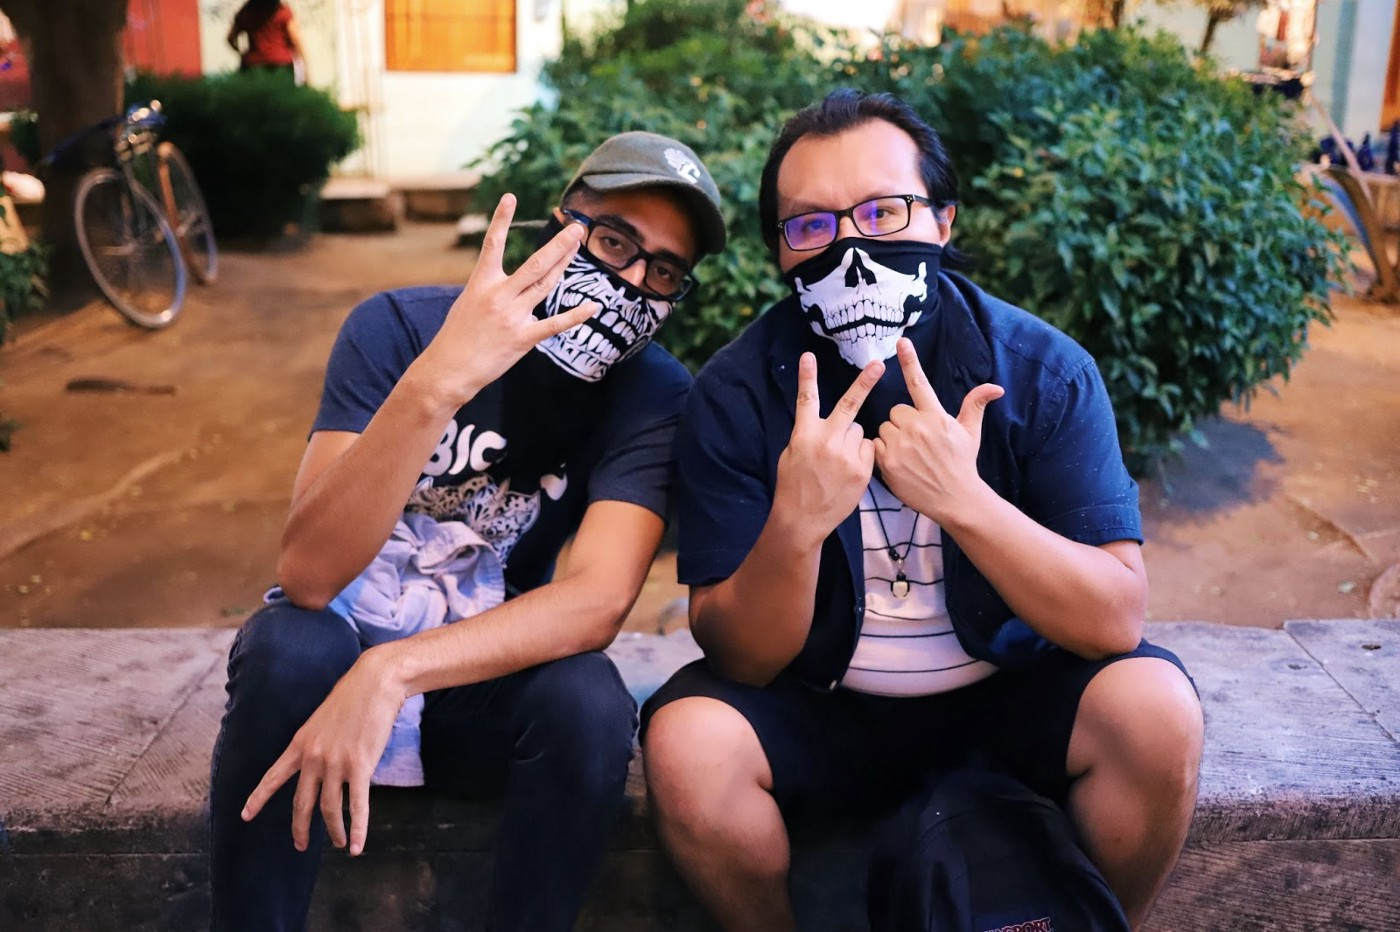 Two people wearing skull gaiters on their faces, holding fingers in W shapes, sitting on a stone bench in front of a house at night.